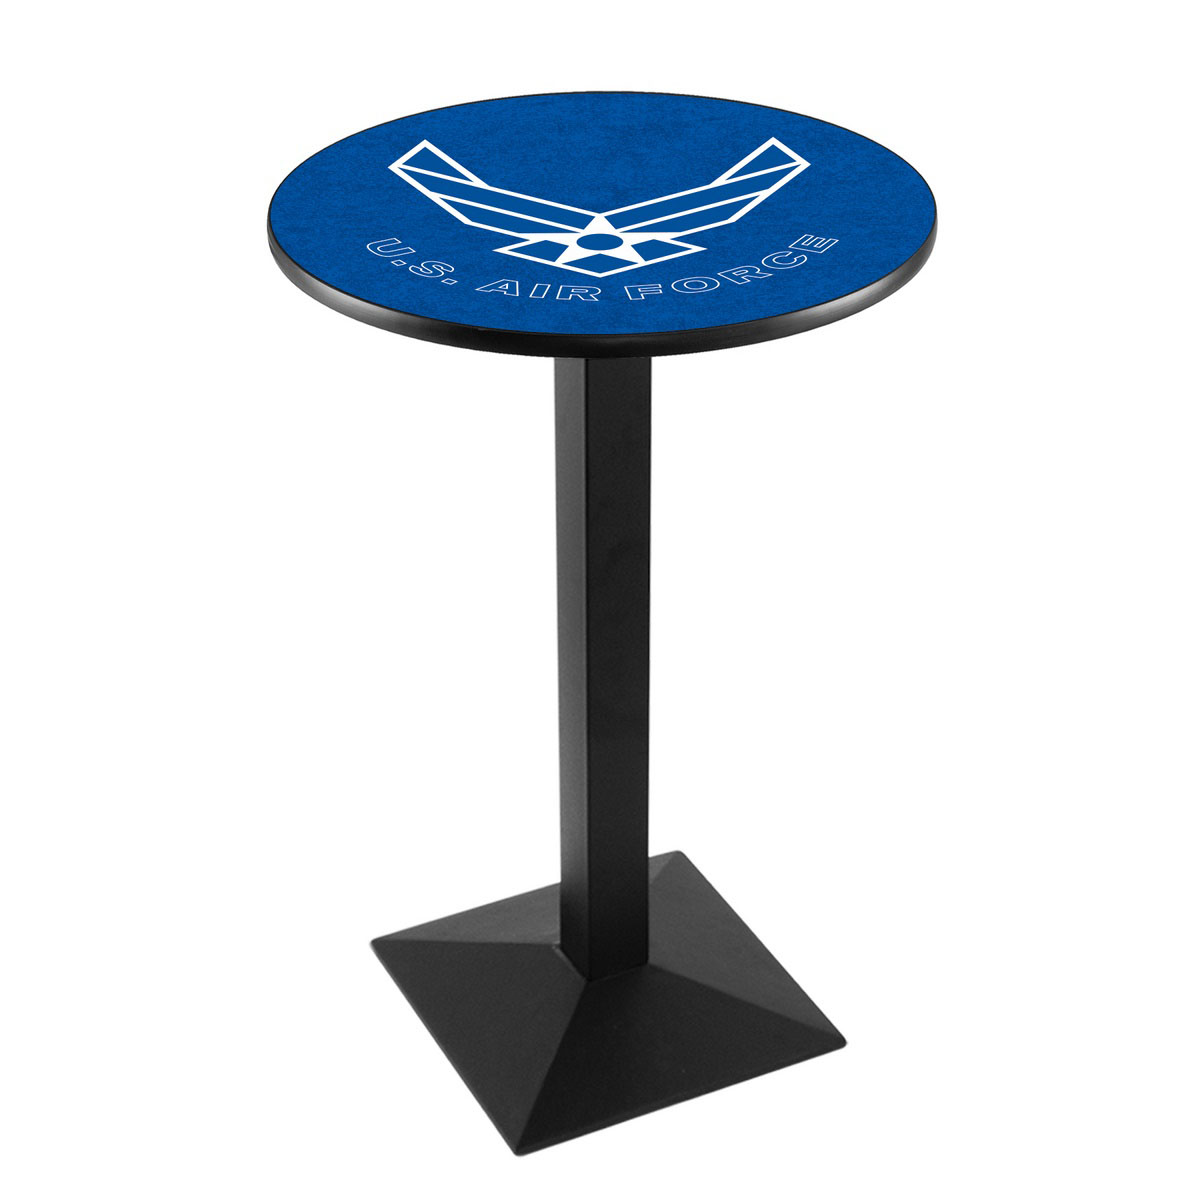 Reliable United States Air Force Logo Pub Bar Table Square Stand Product Photo